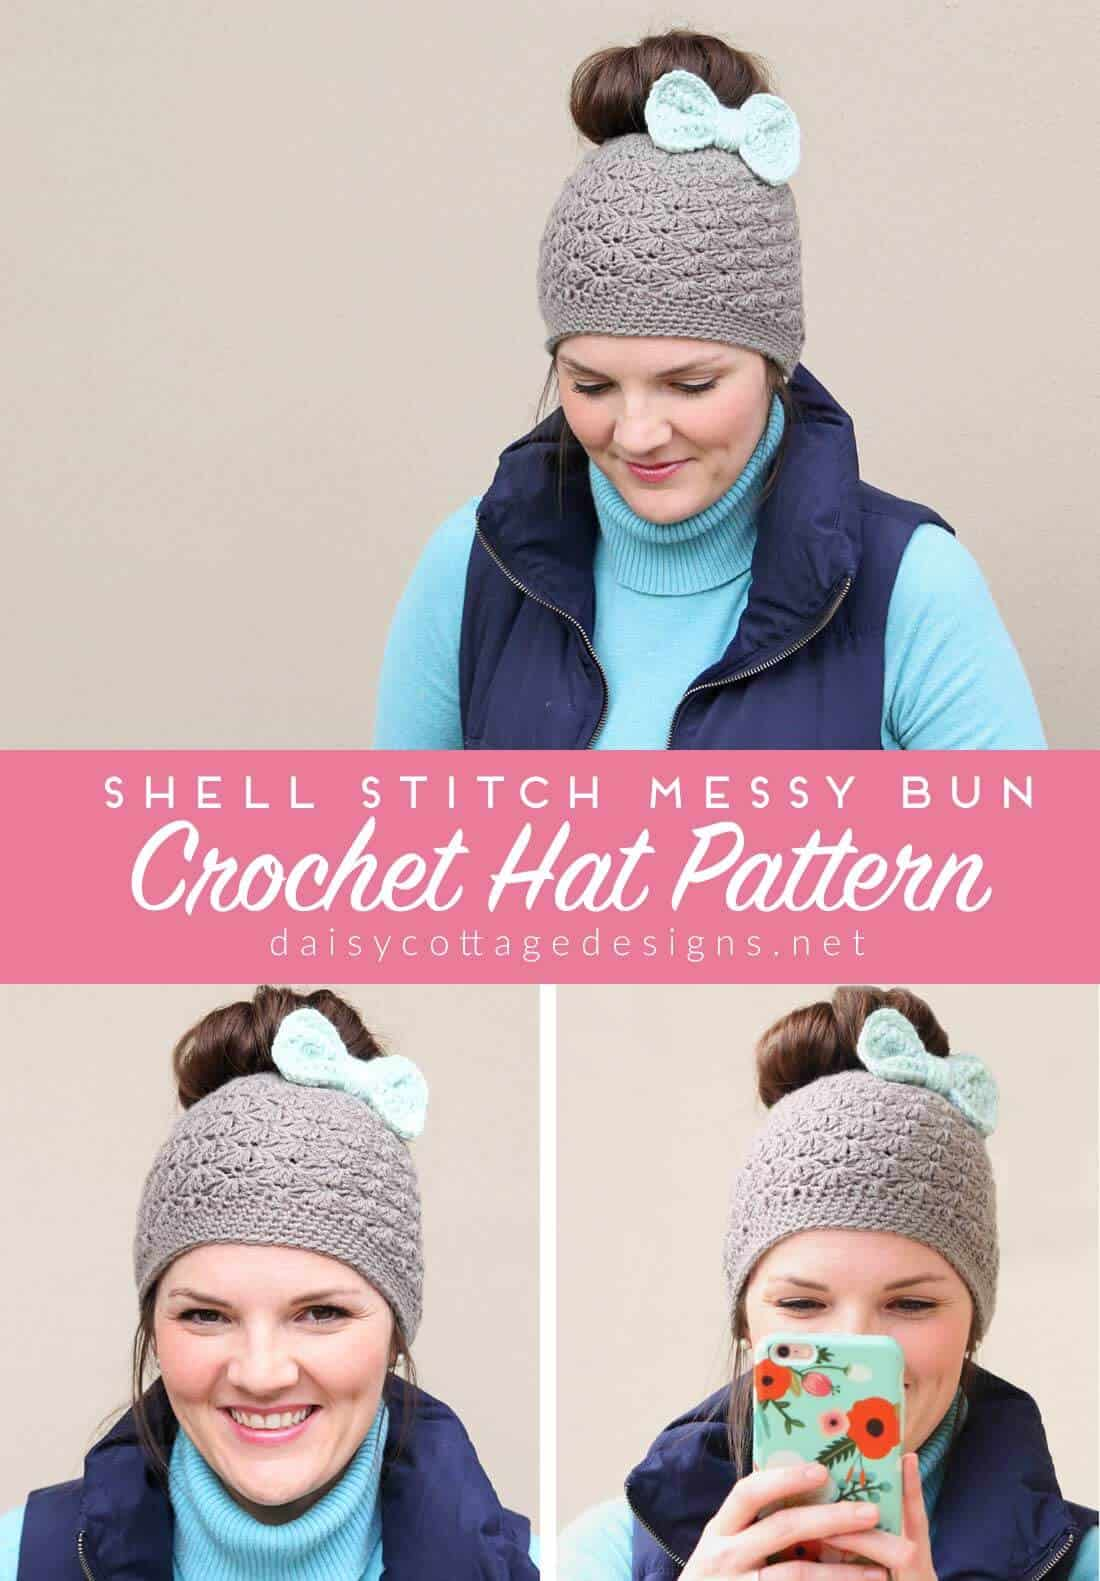 Use this messy bun crochet hat pattern from Daisy Cottage Designs to make this beautiful messy bun hat for you and your friends. Quick and easy to make, this free crochet pattern will be one you go back to over and over again.